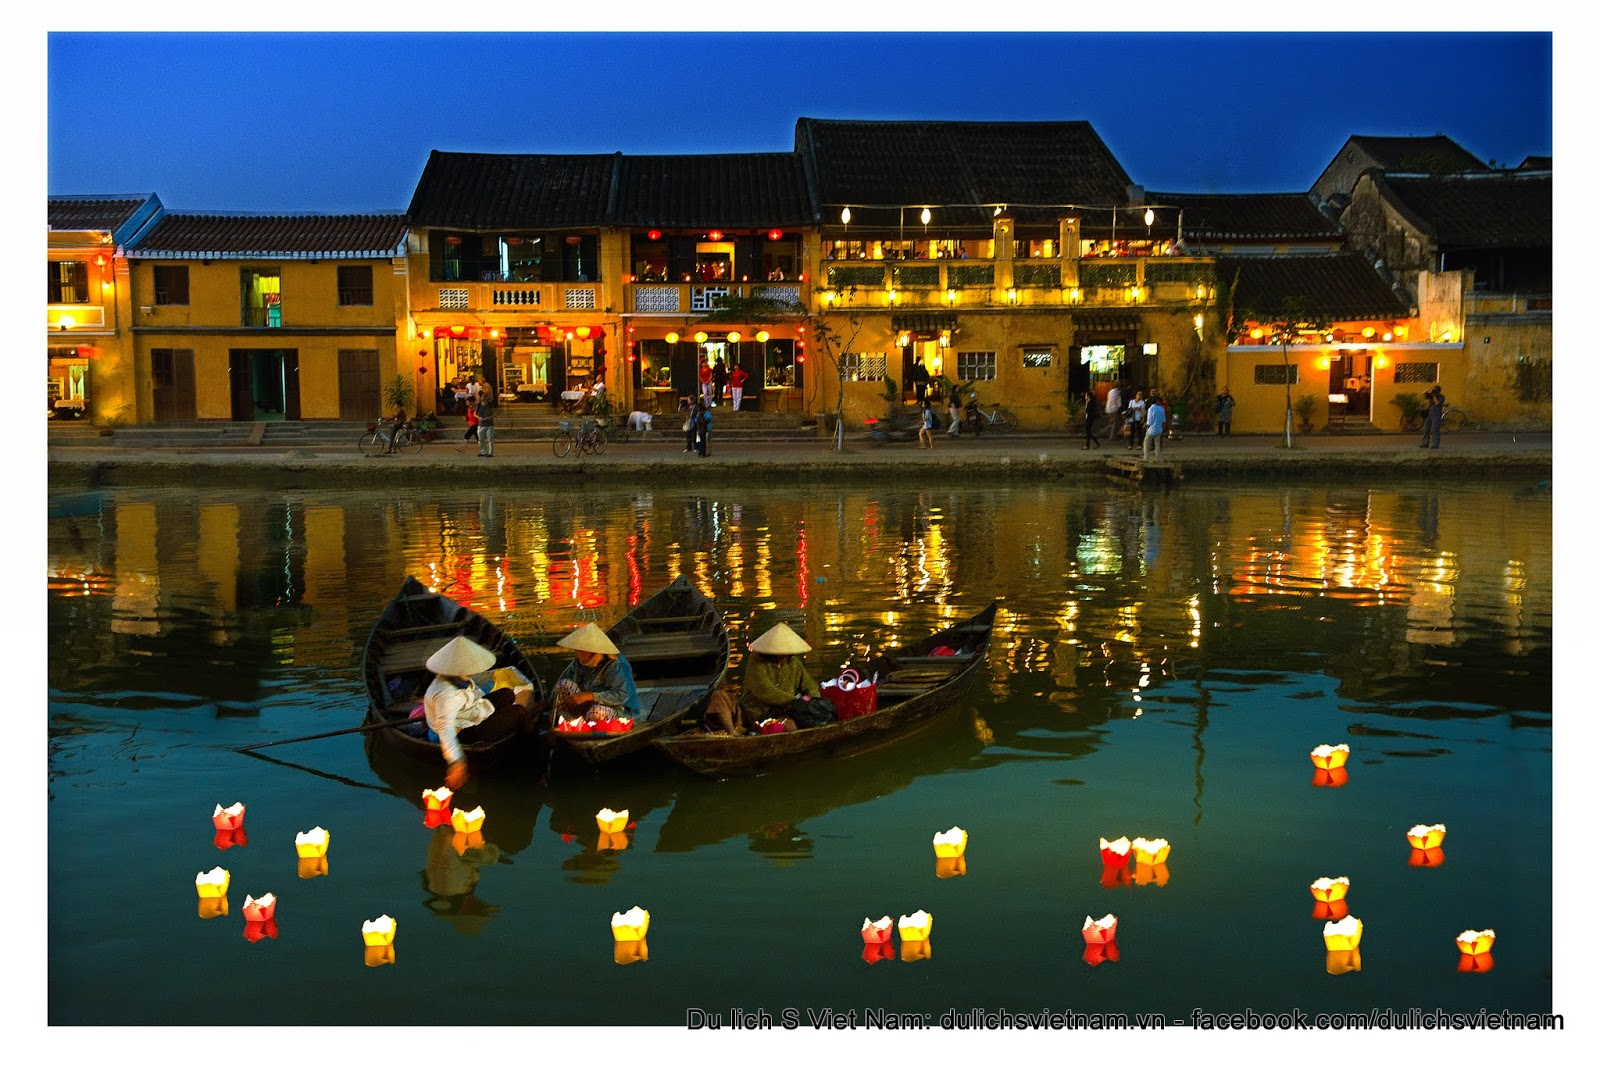 Hoi An Old Town Hoi An, Hoi An Ancient Town - World Cultural Heritage Site By Unesco